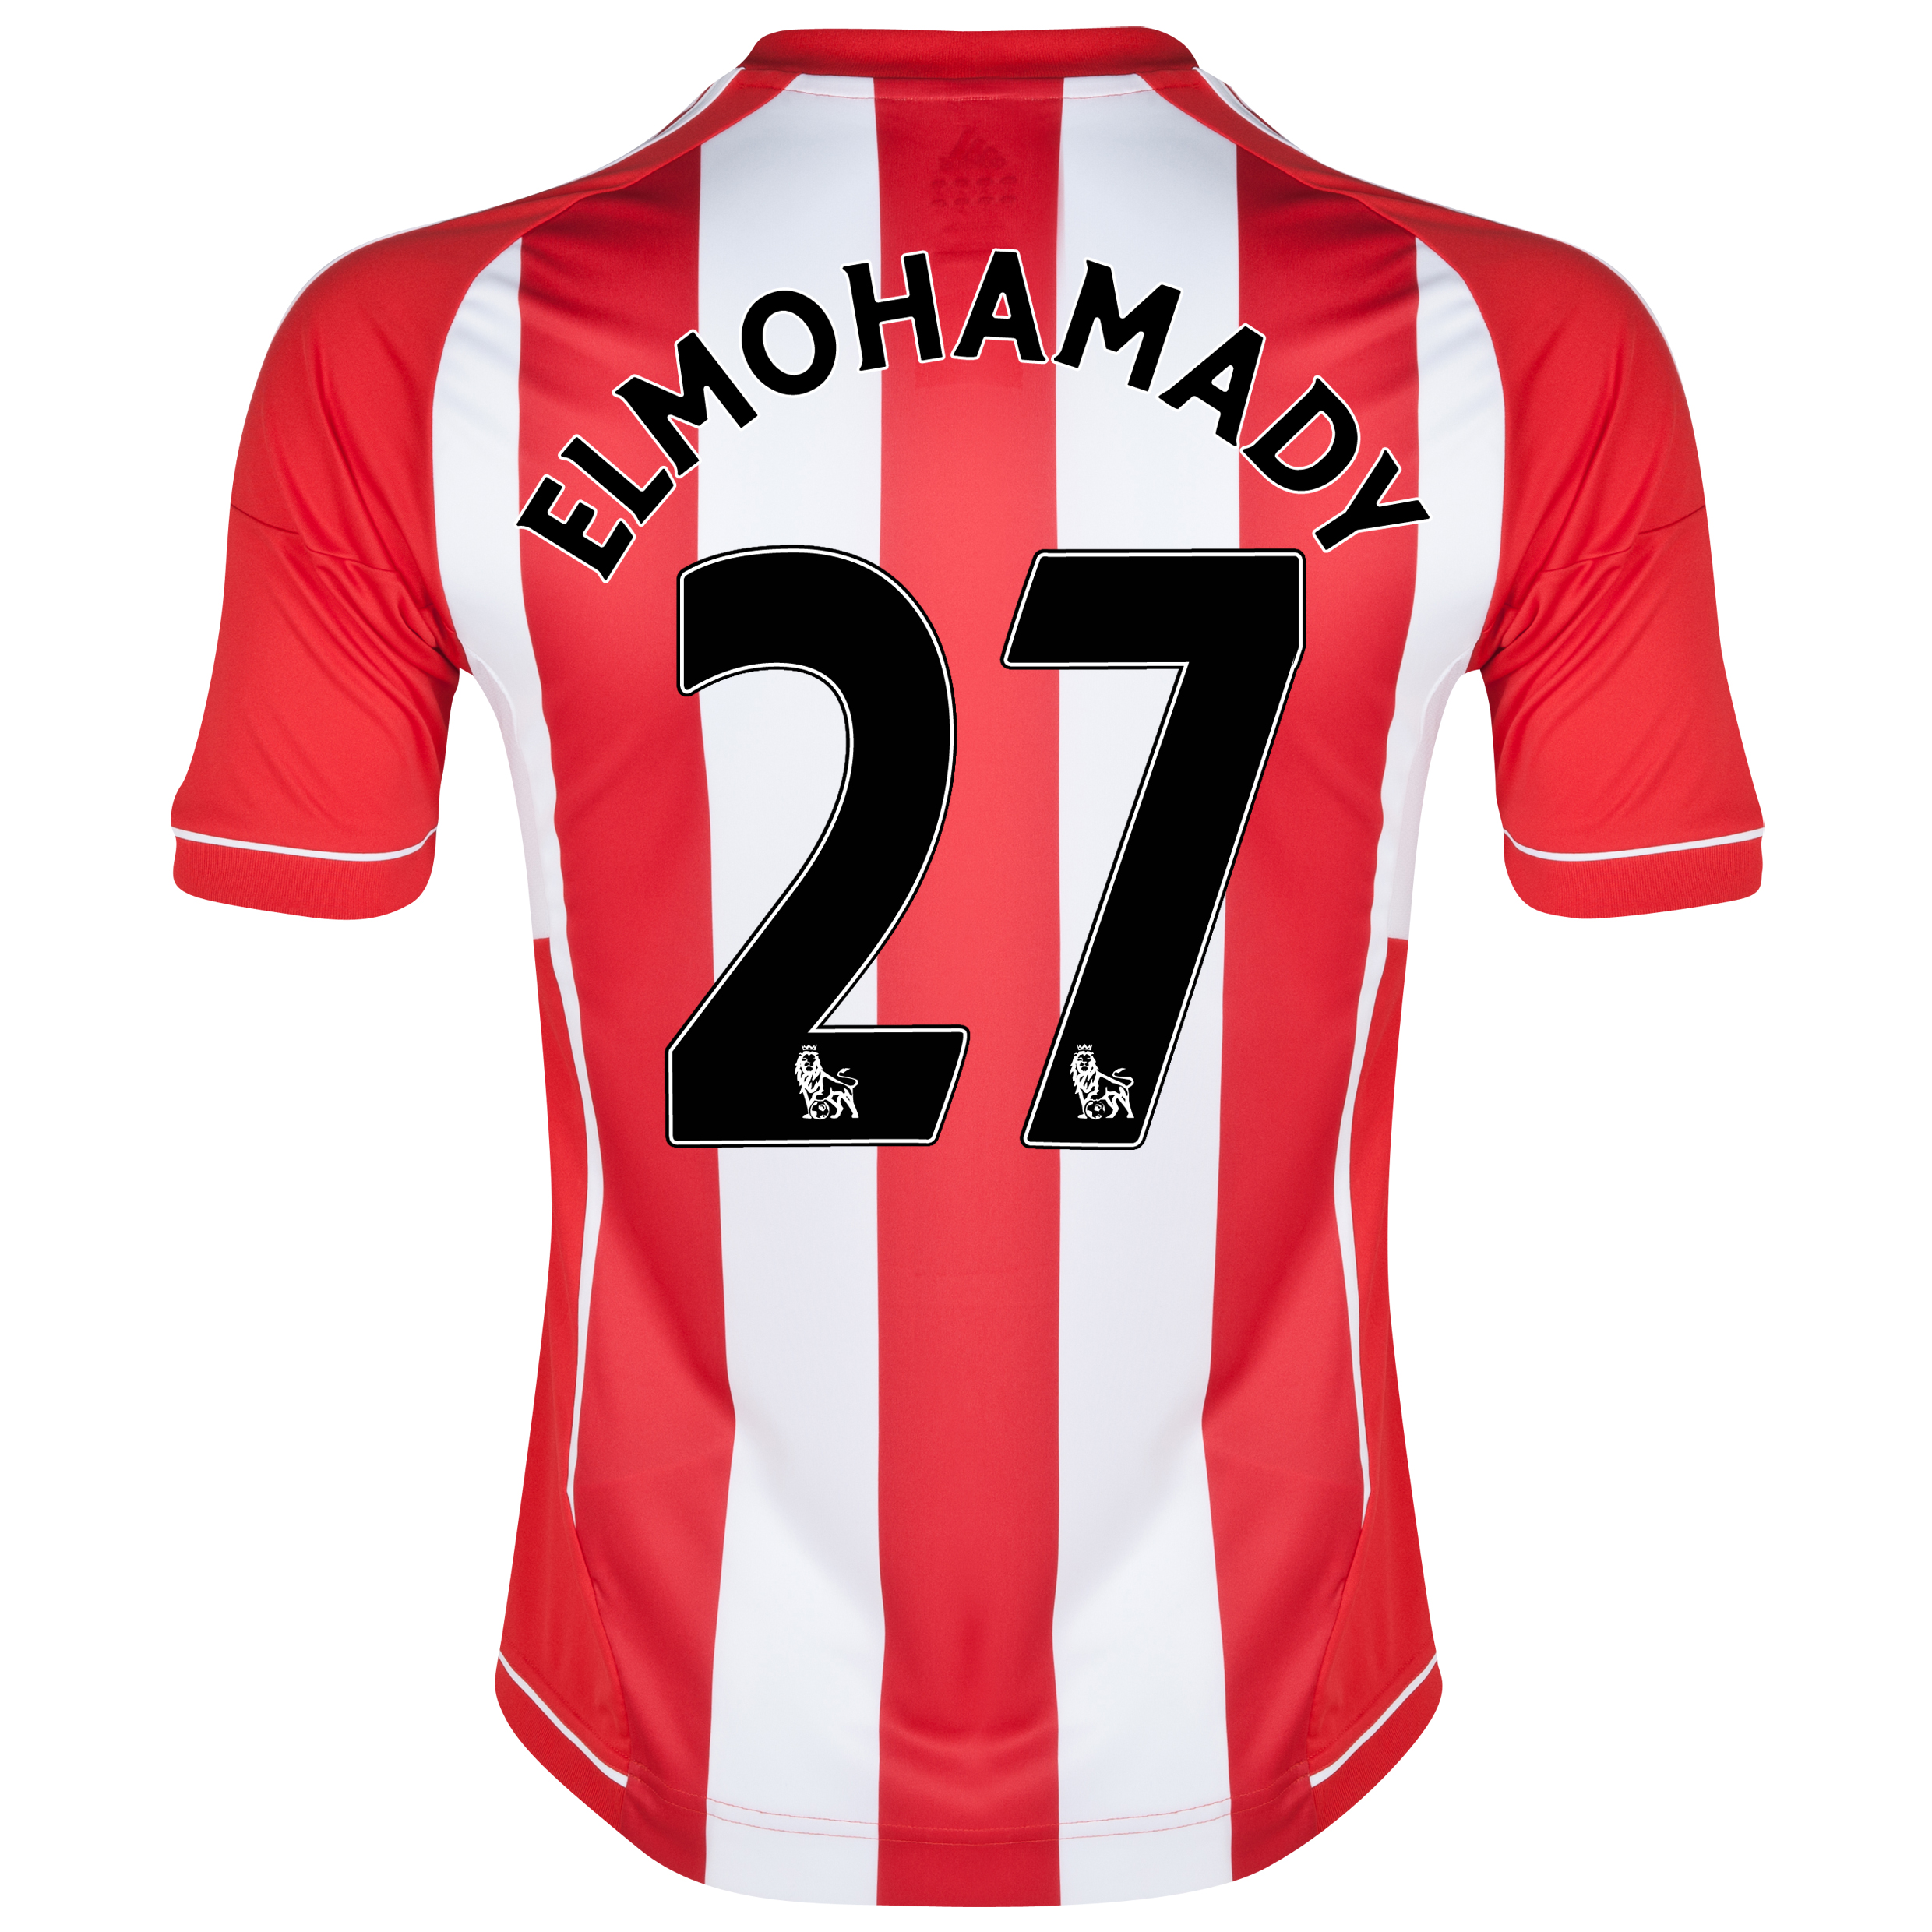 Sunderland Home Shirt 2012/13 - Junior with Elmohamady 27 printing